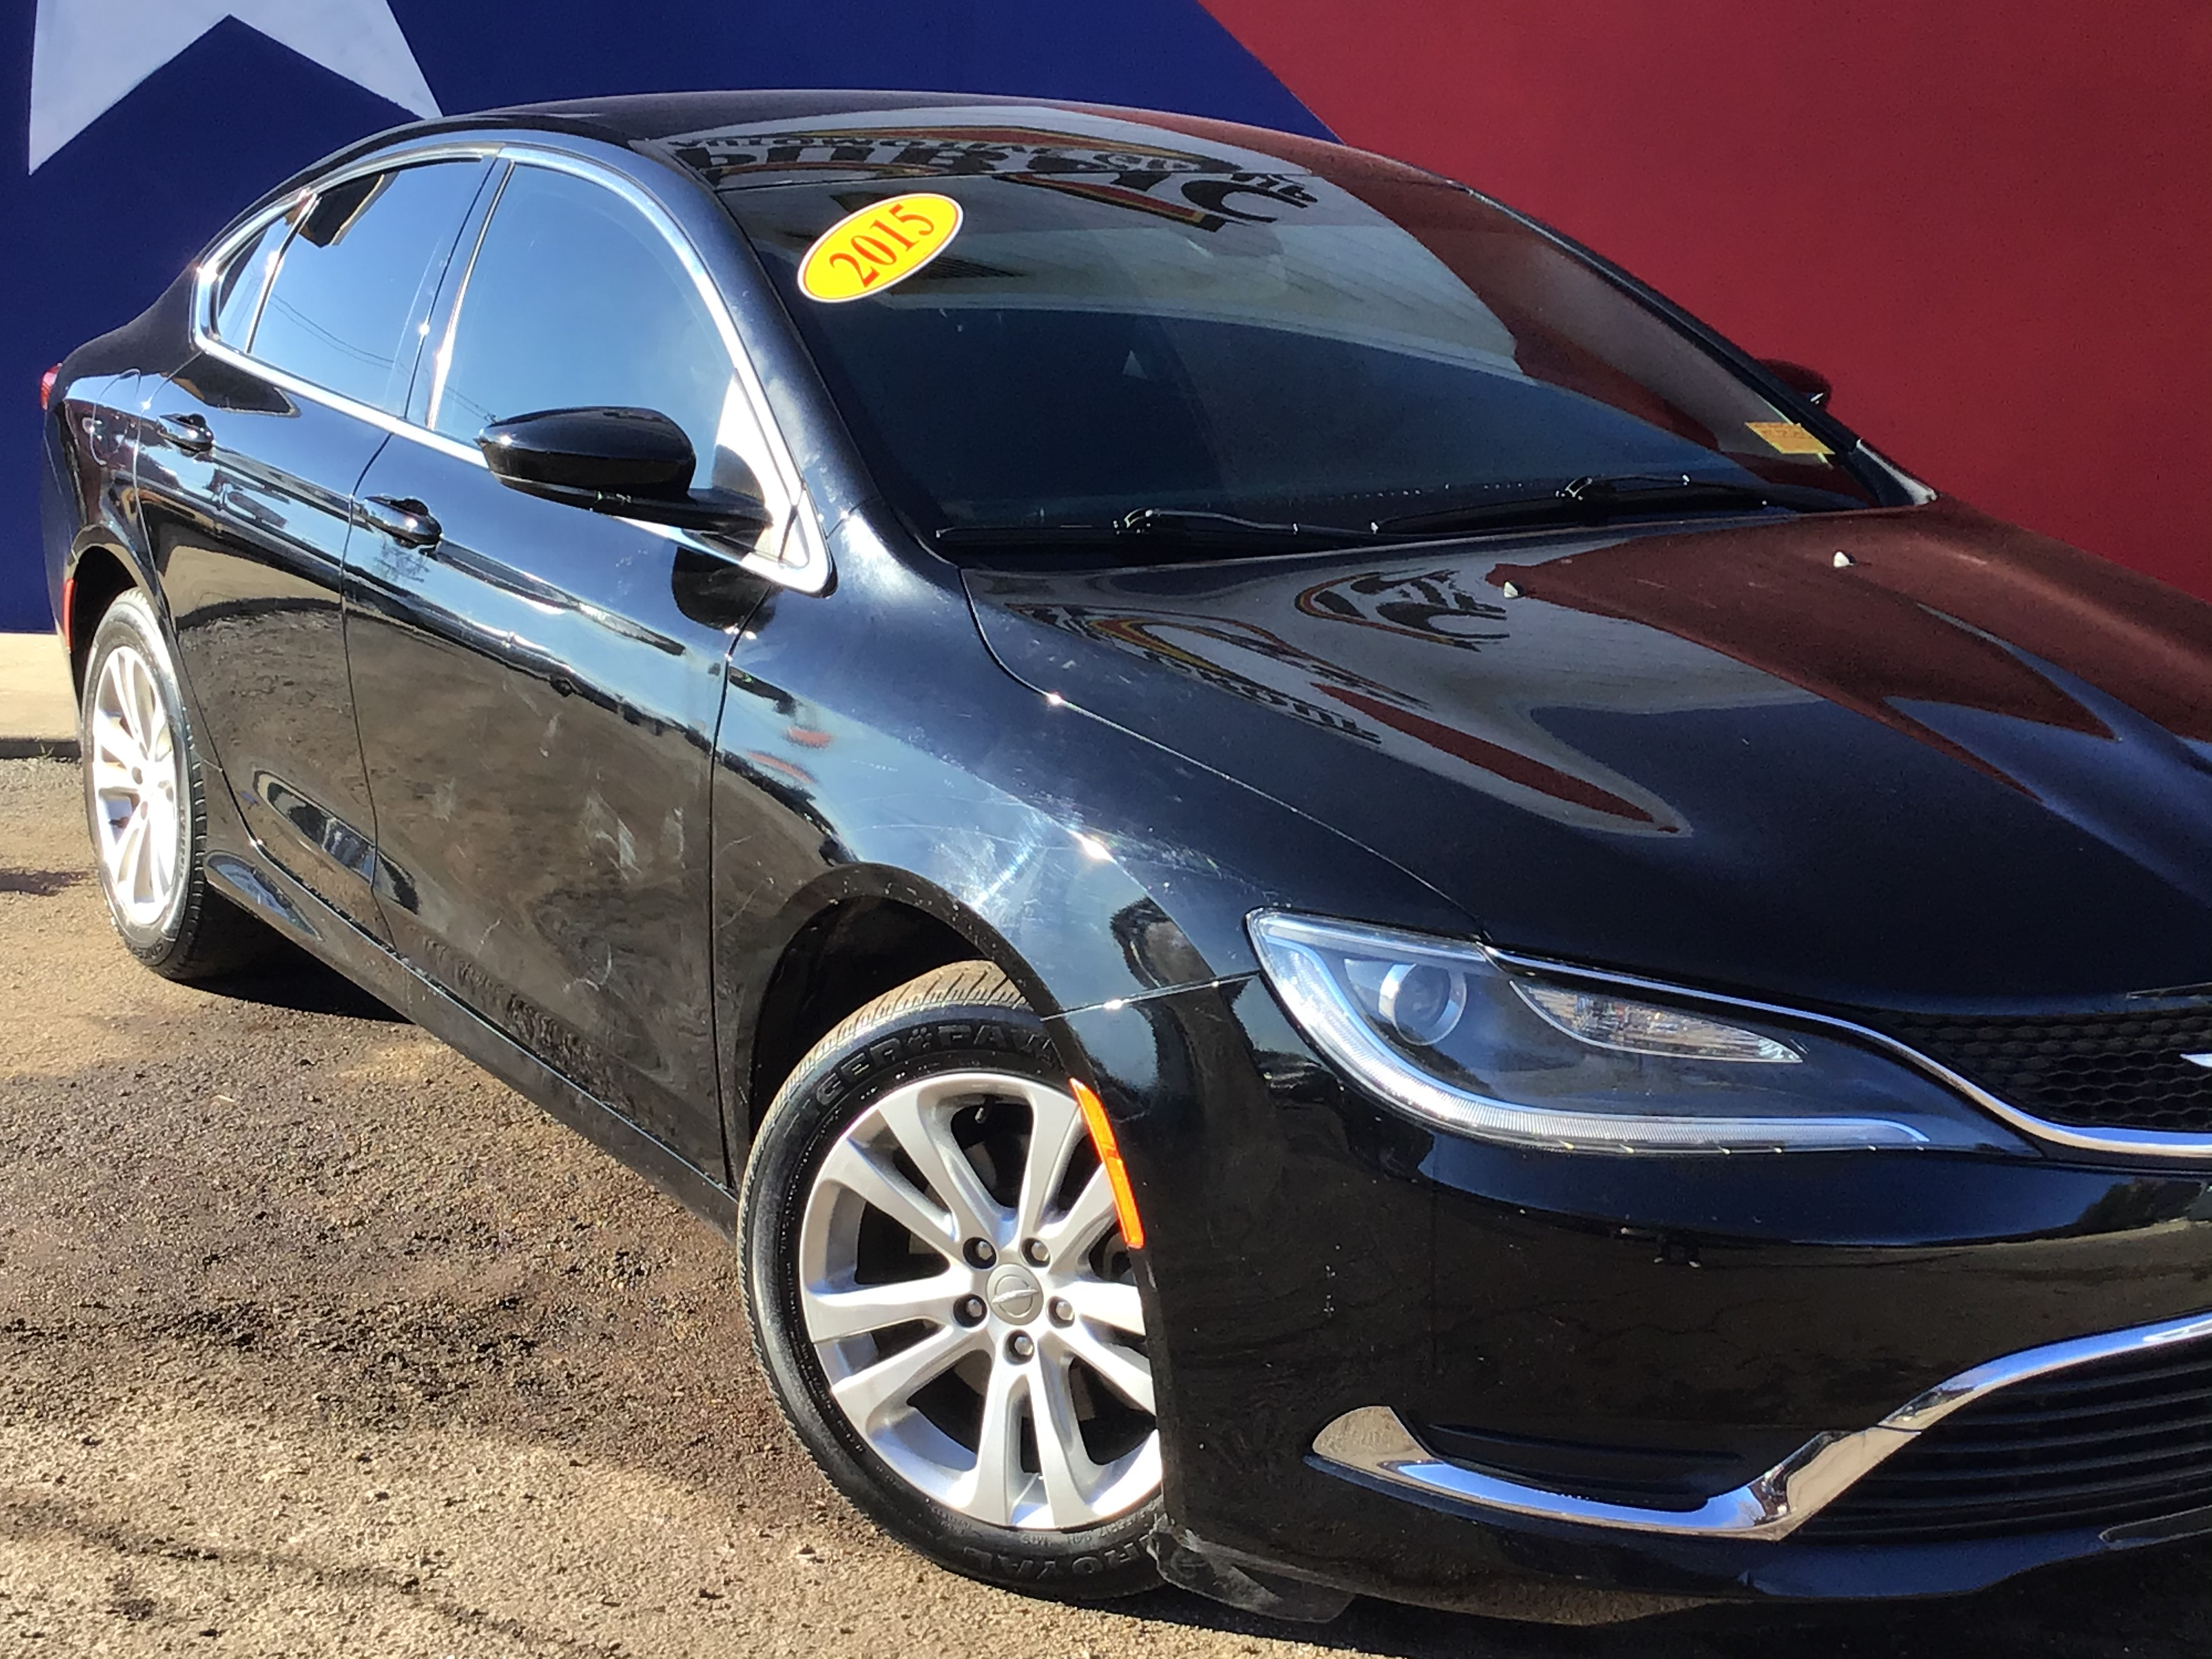 used vehicle - Sedan CHRYSLER 200 2015